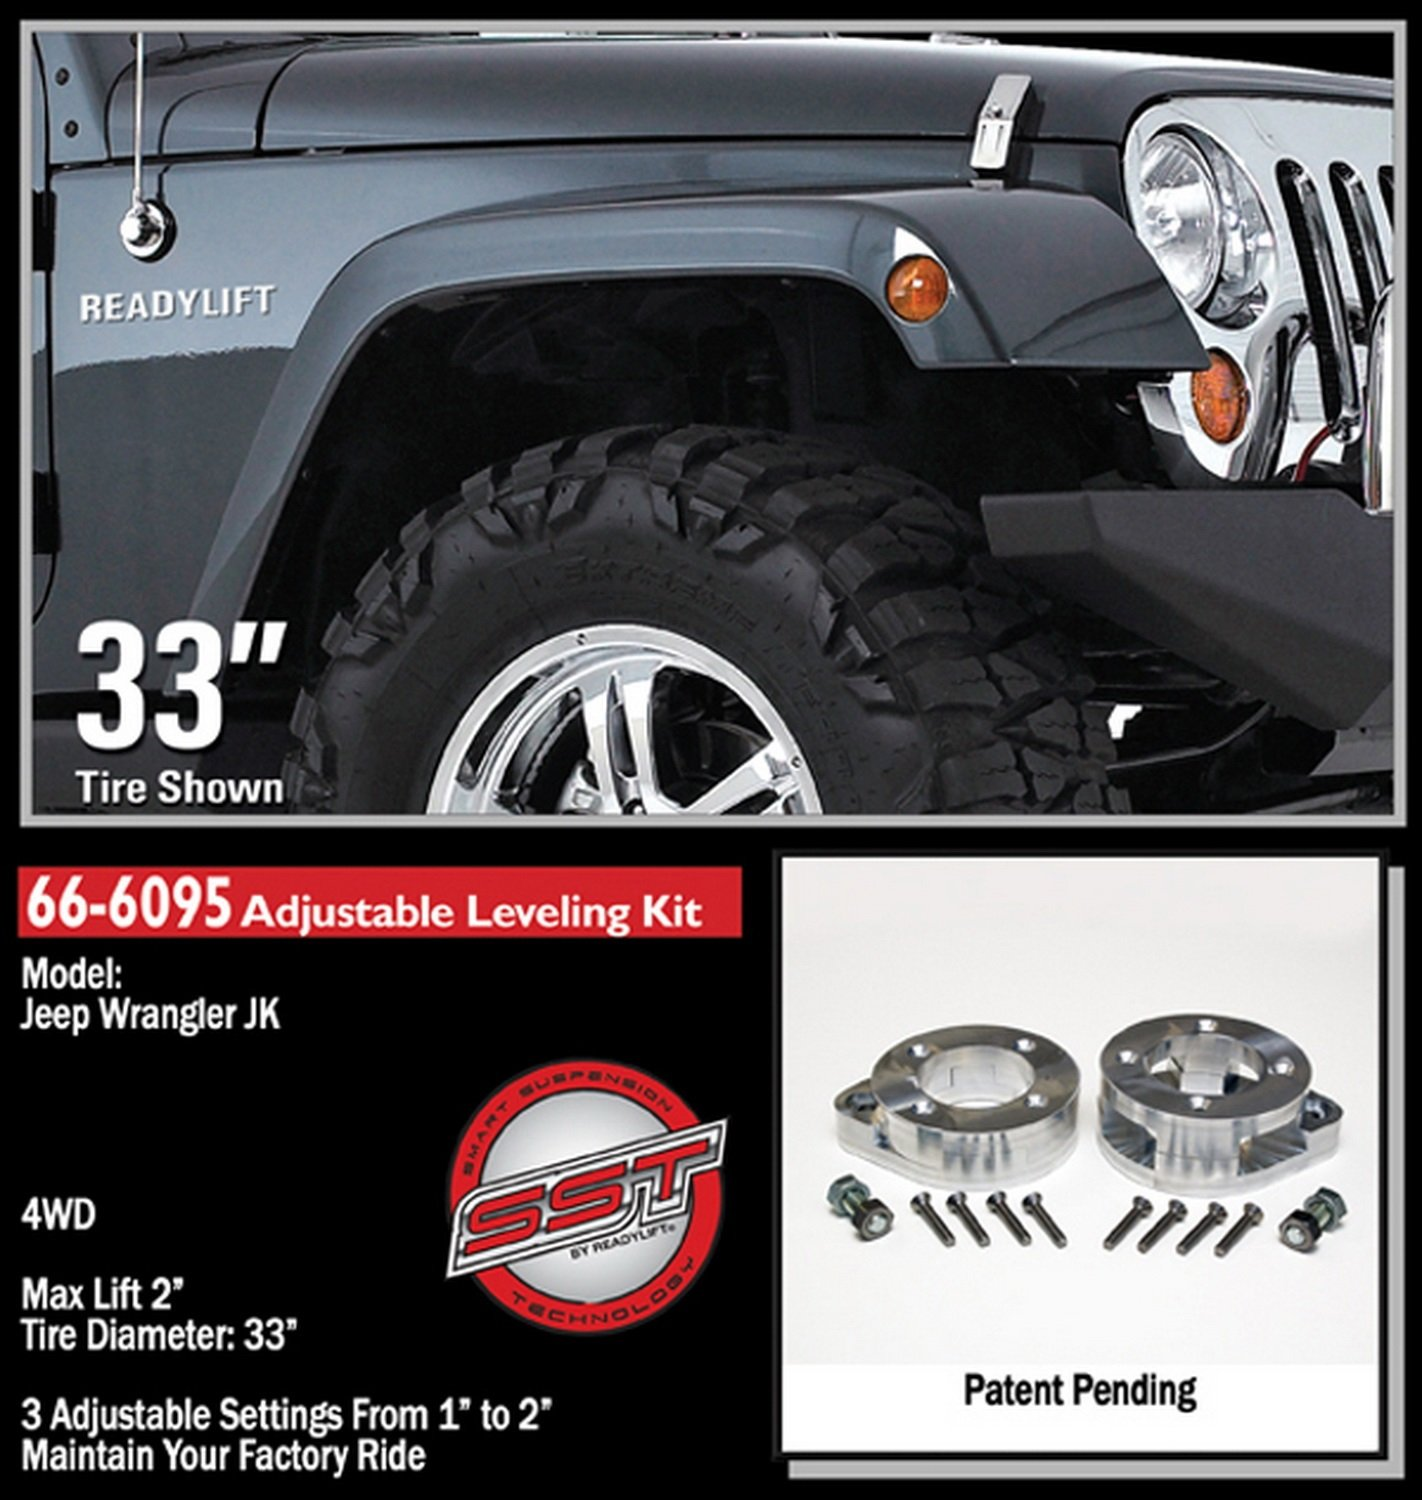 pittsburgh auto ii wrangler pa photo tires lift kits wheels rockstar sport brands gallery and jeep a inch image mxt mastercrsft with xd total kmc